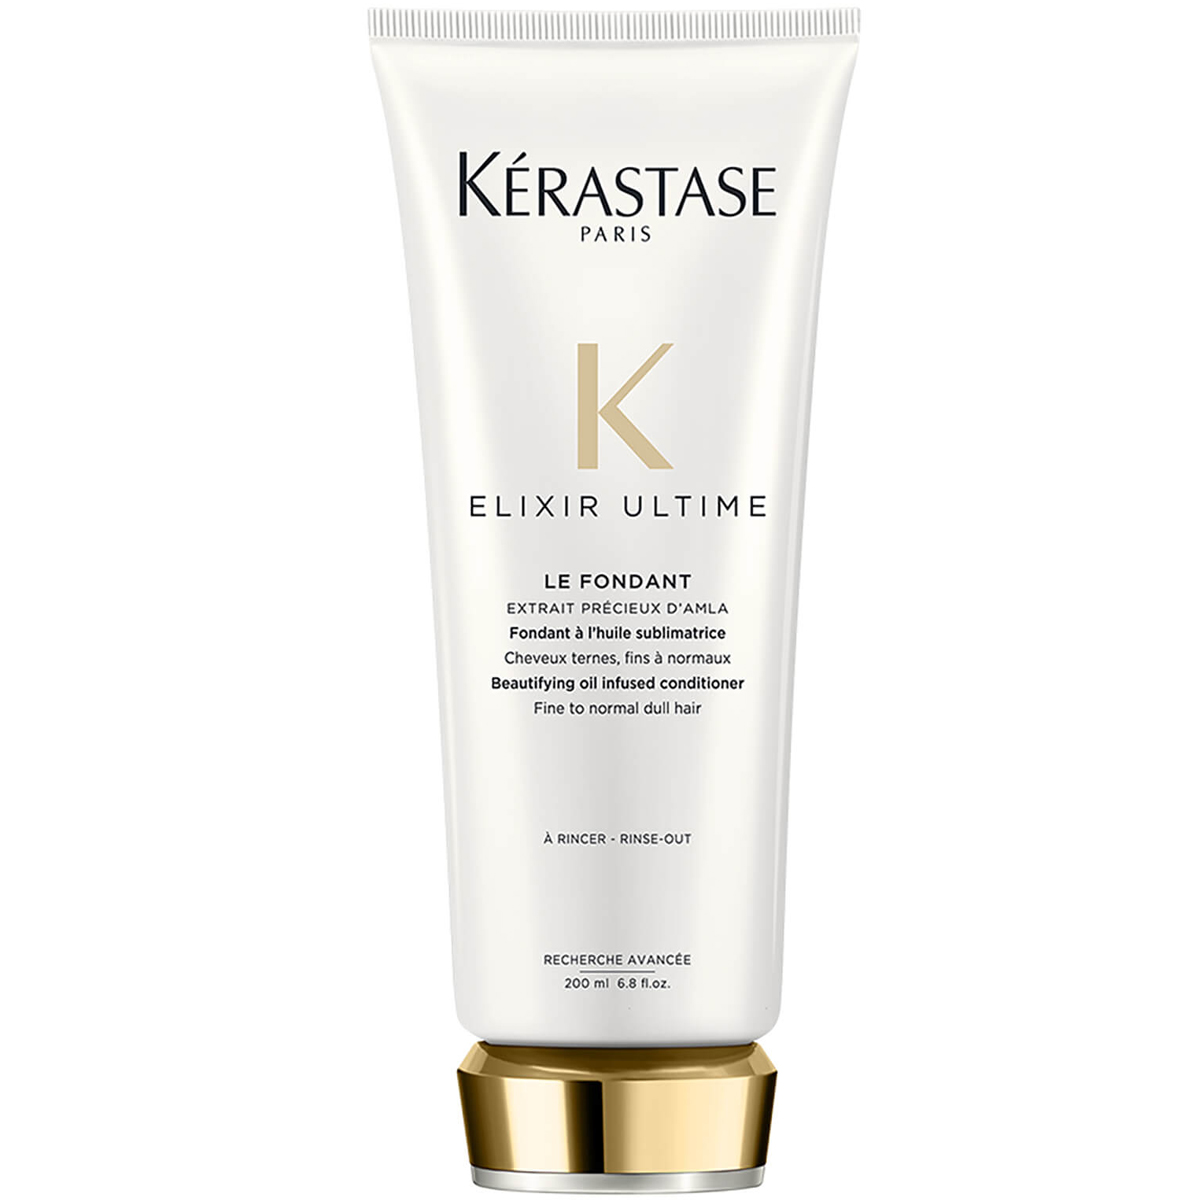 Kérastase Elixir Ultime Beautifying Oil Conditioner